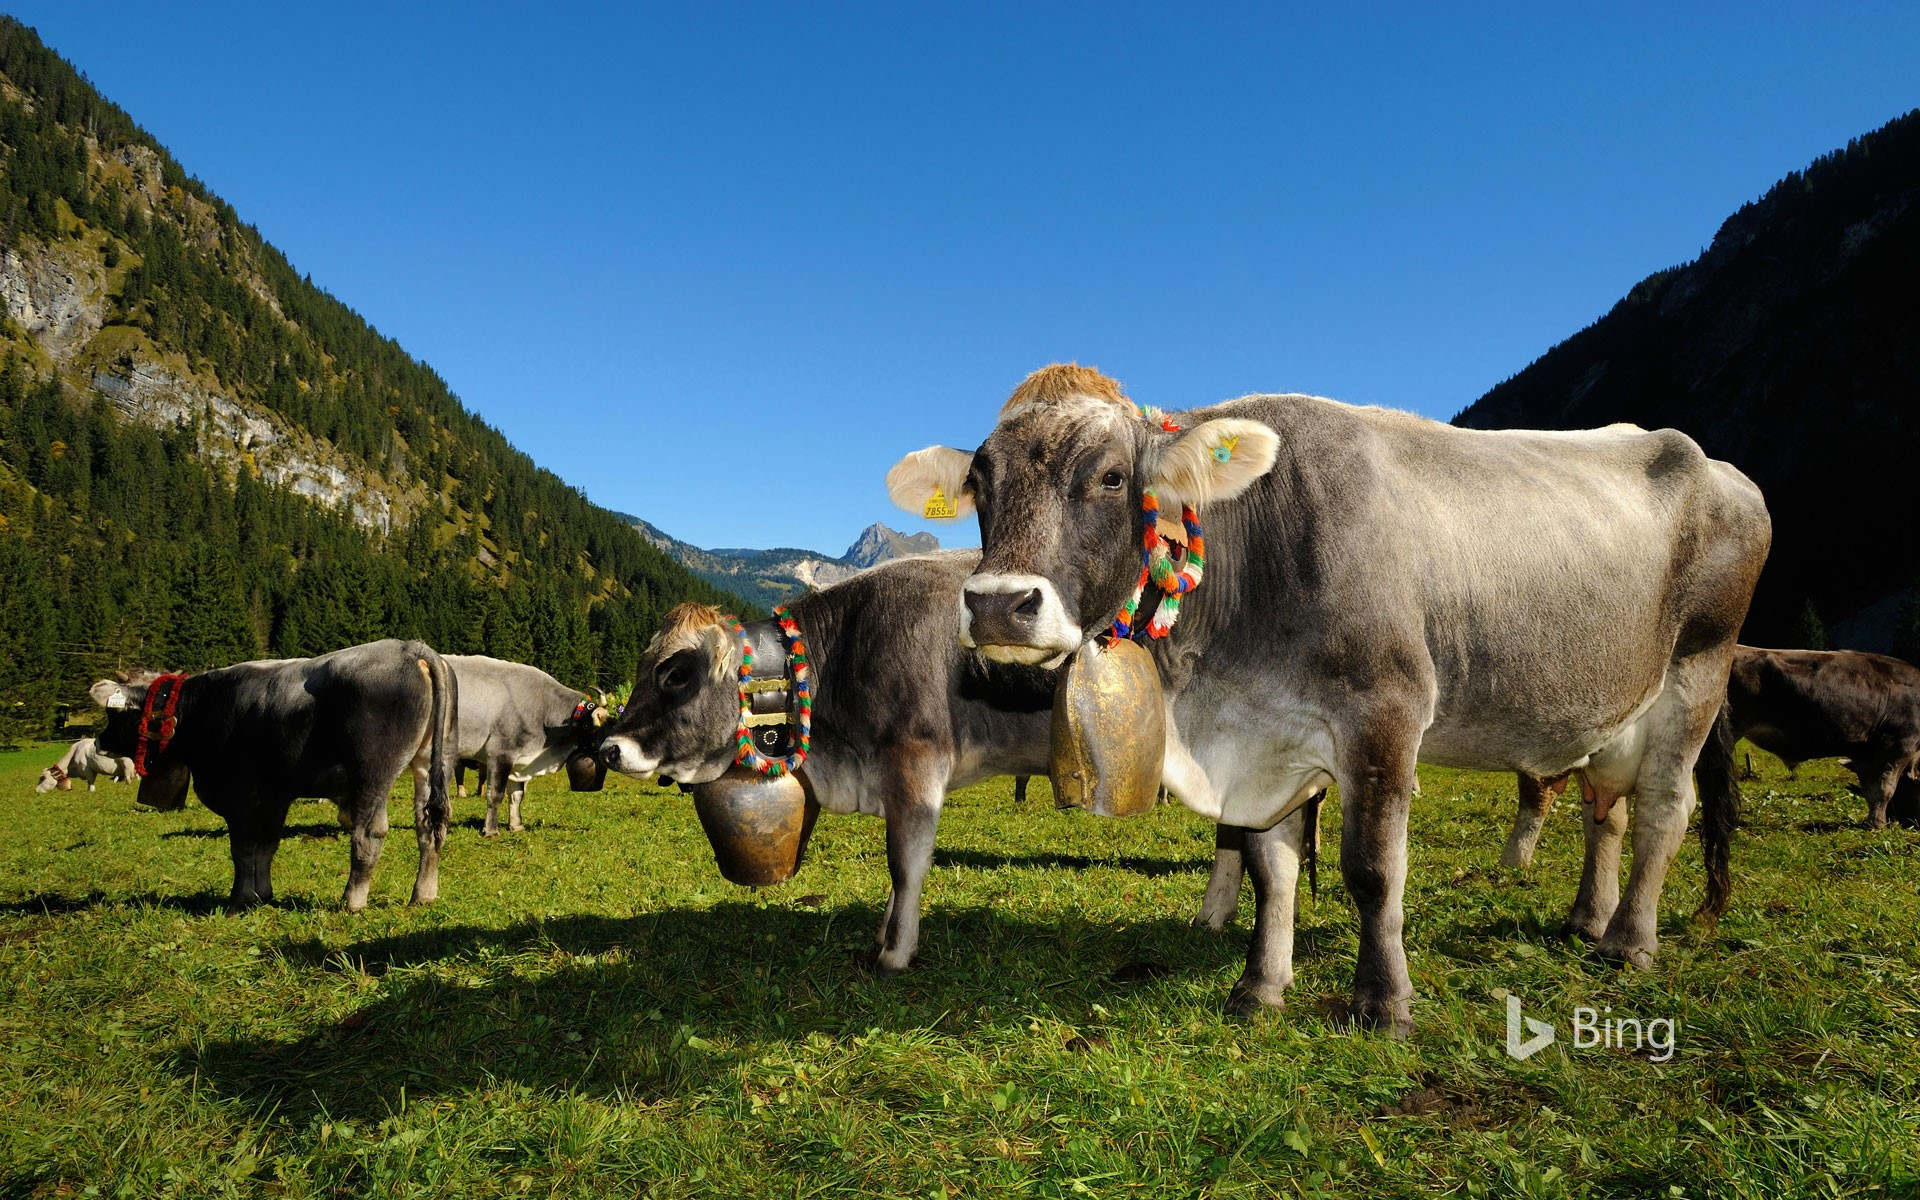 Cows in Tannheimer Tal, a high valley in Tyrol, Austria